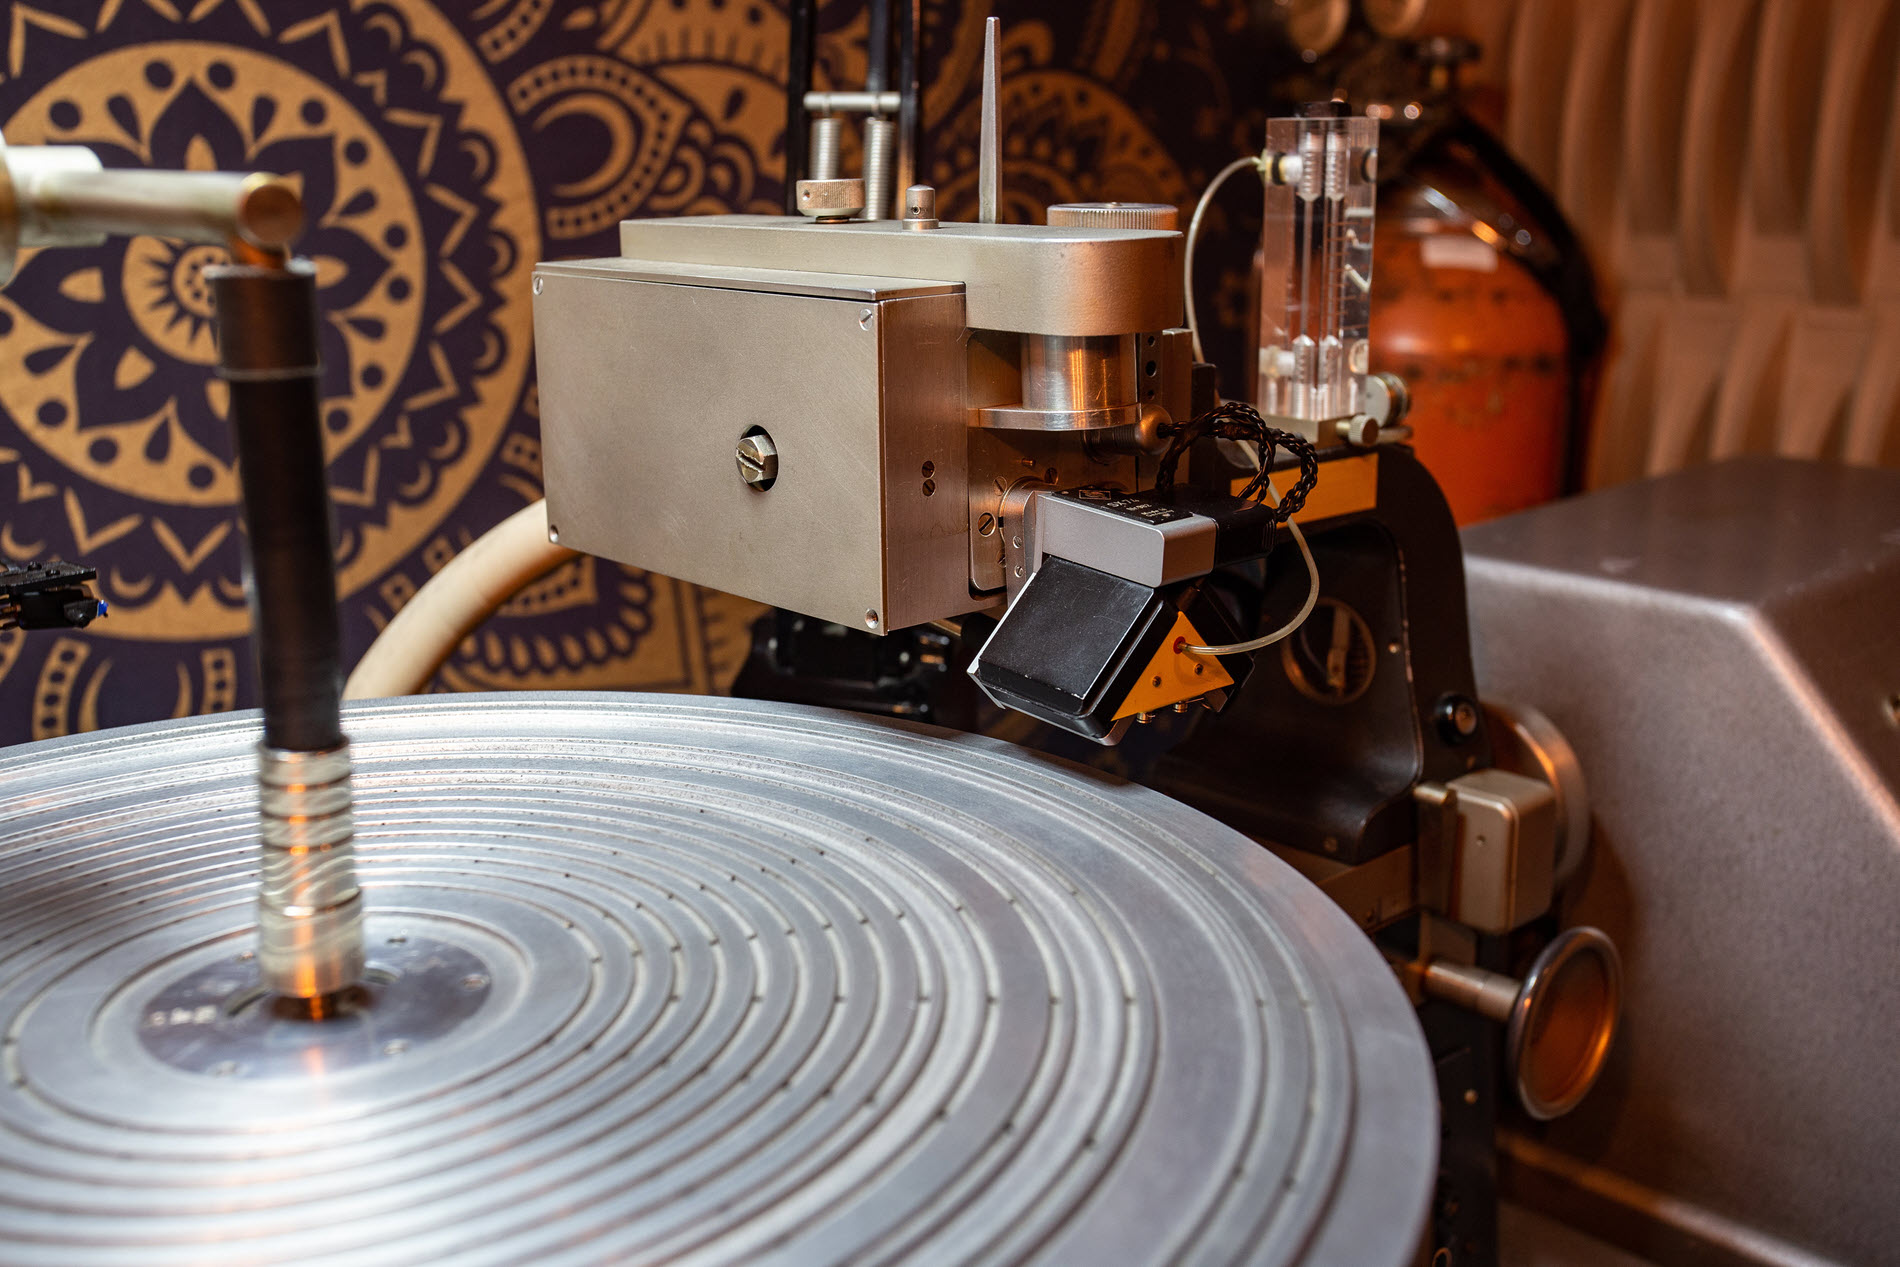 Turntable like equipment with cutter where arm would be.